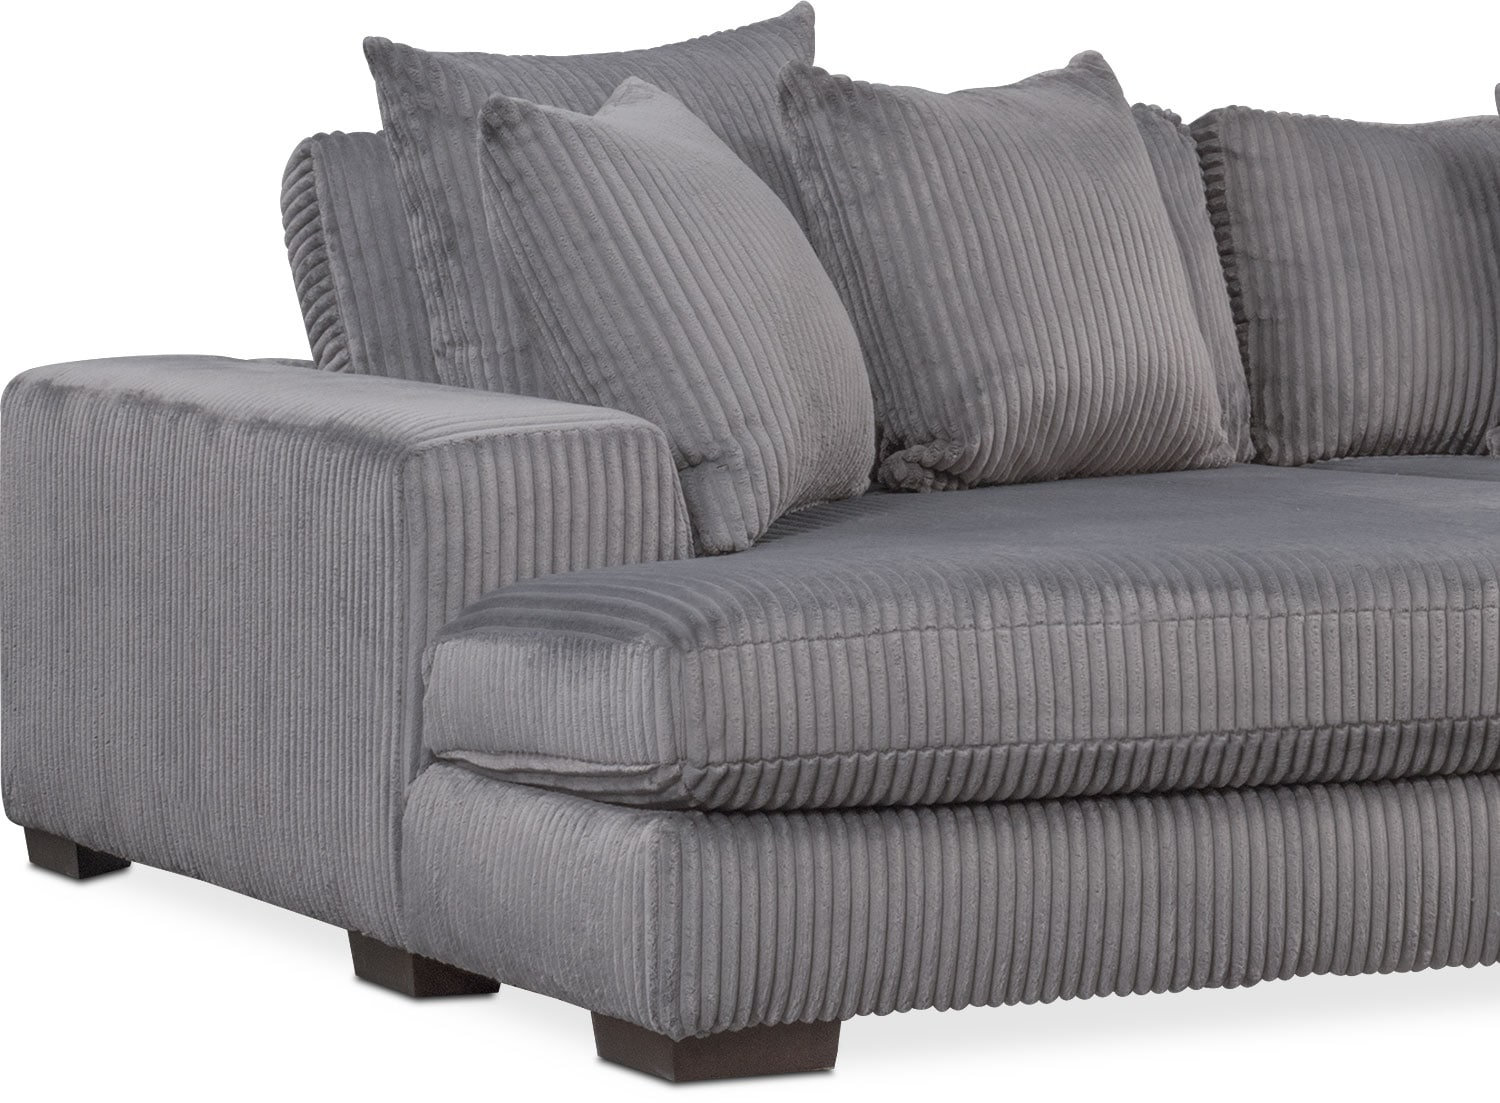 Lounge 2-Piece Sectional with Double Chaise - Gray ...